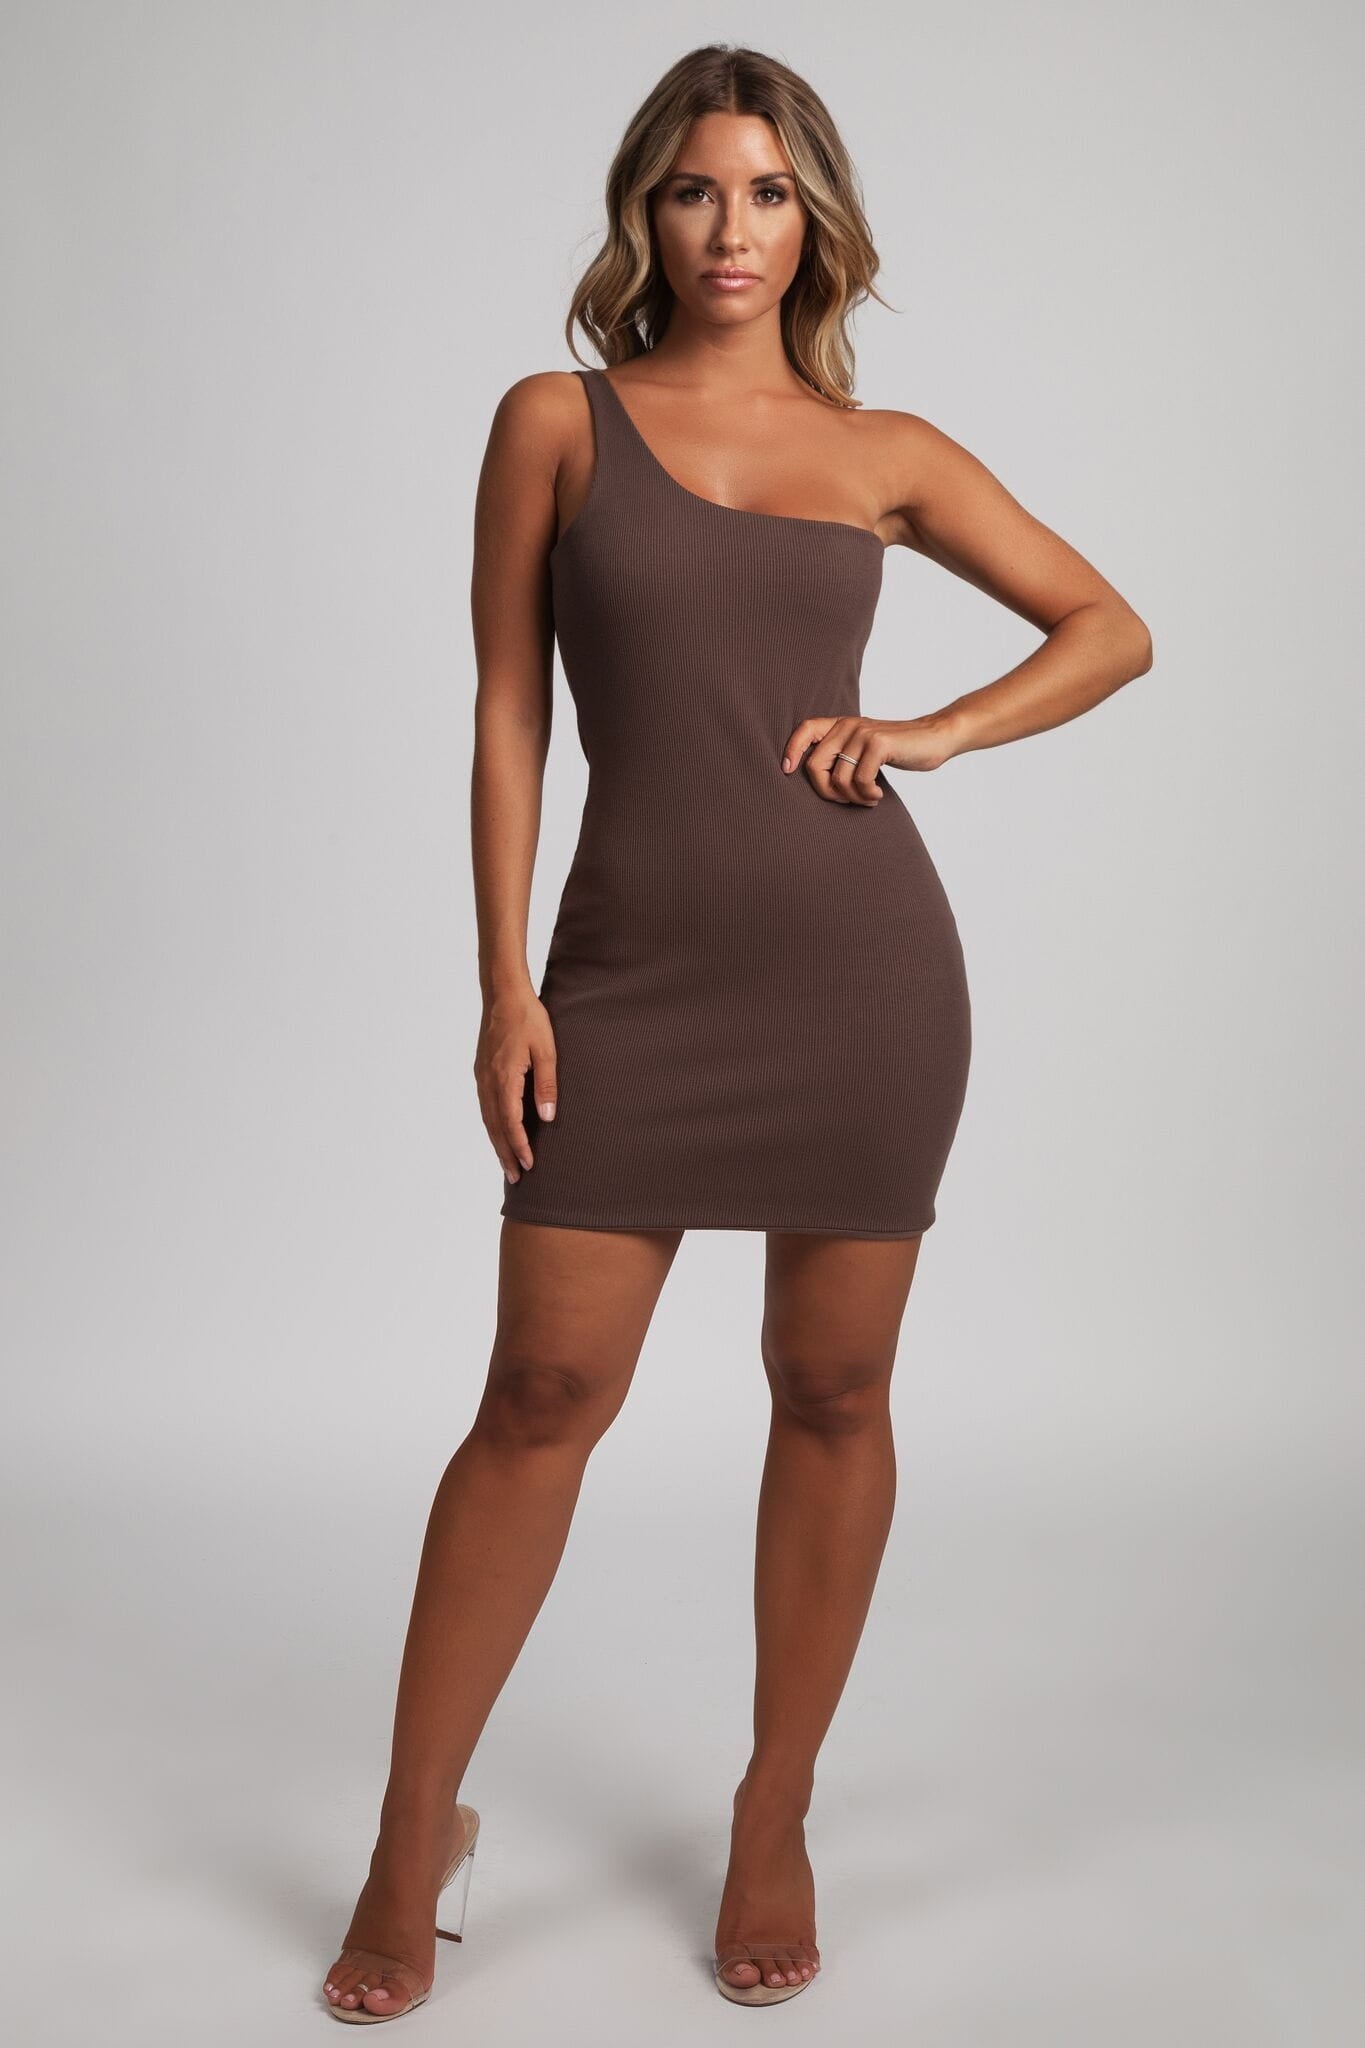 5645d56b61b0 Scarlett One-Shoulder Bodycon Rib Mini Dress - Chocolate - MESHKI